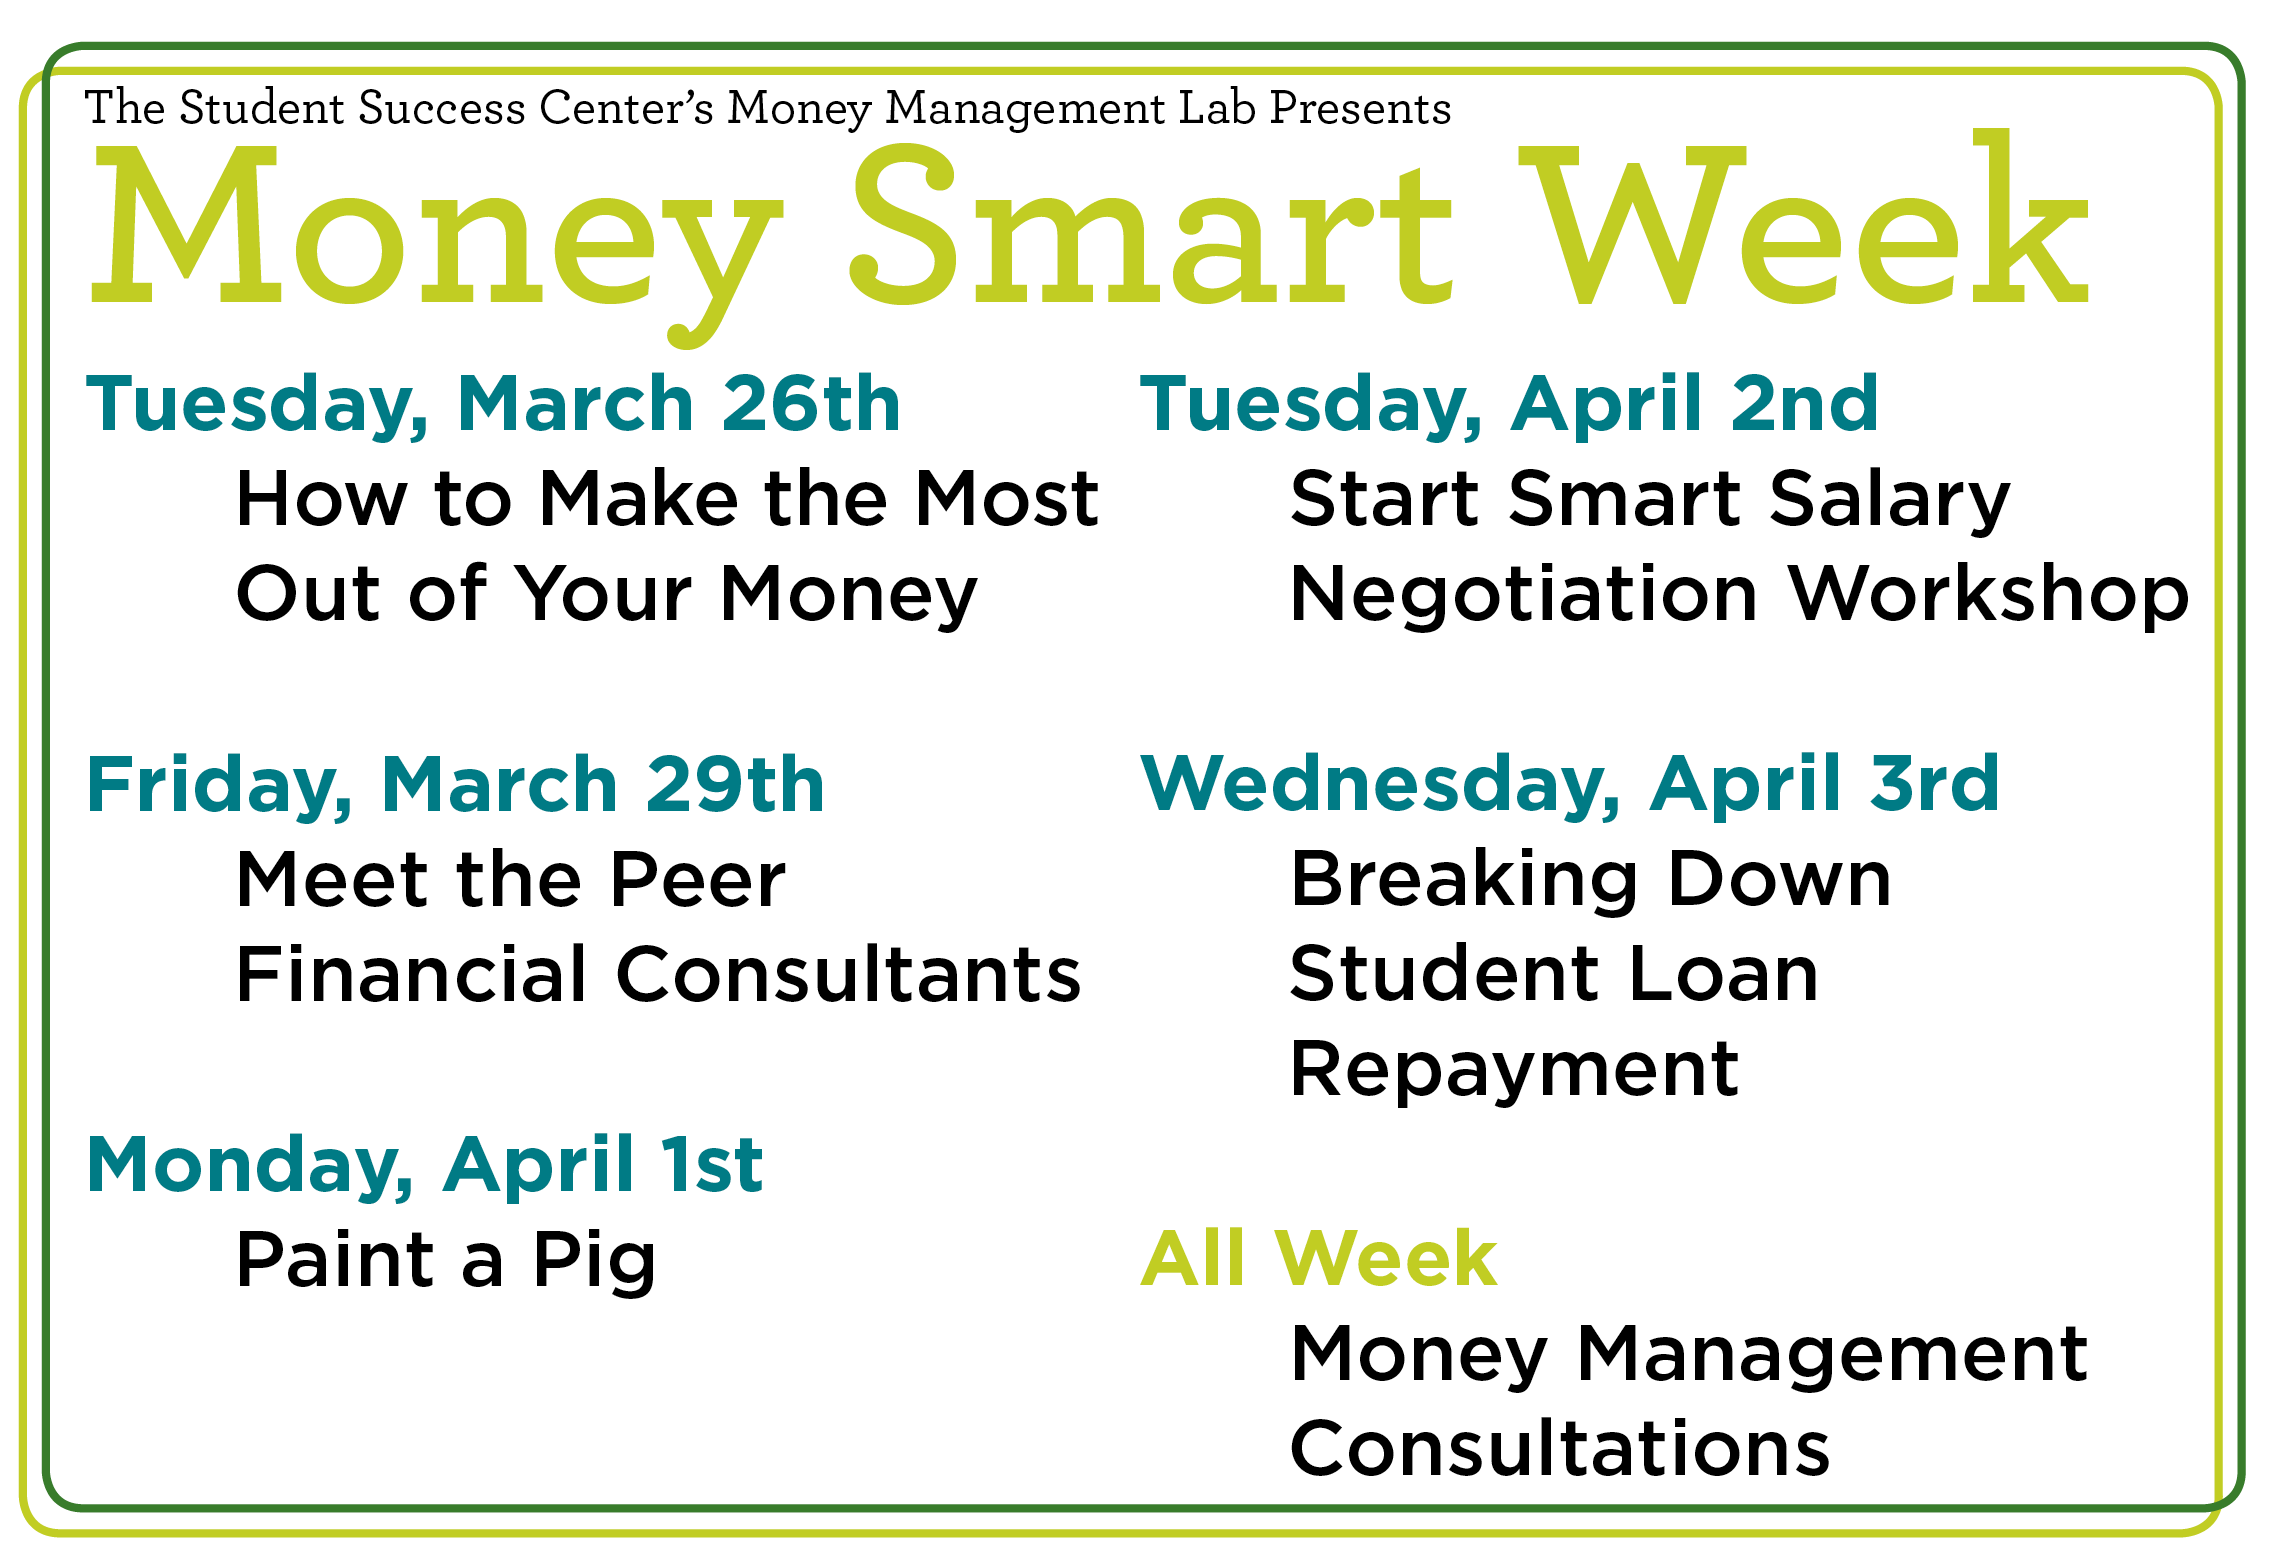 money smart week image